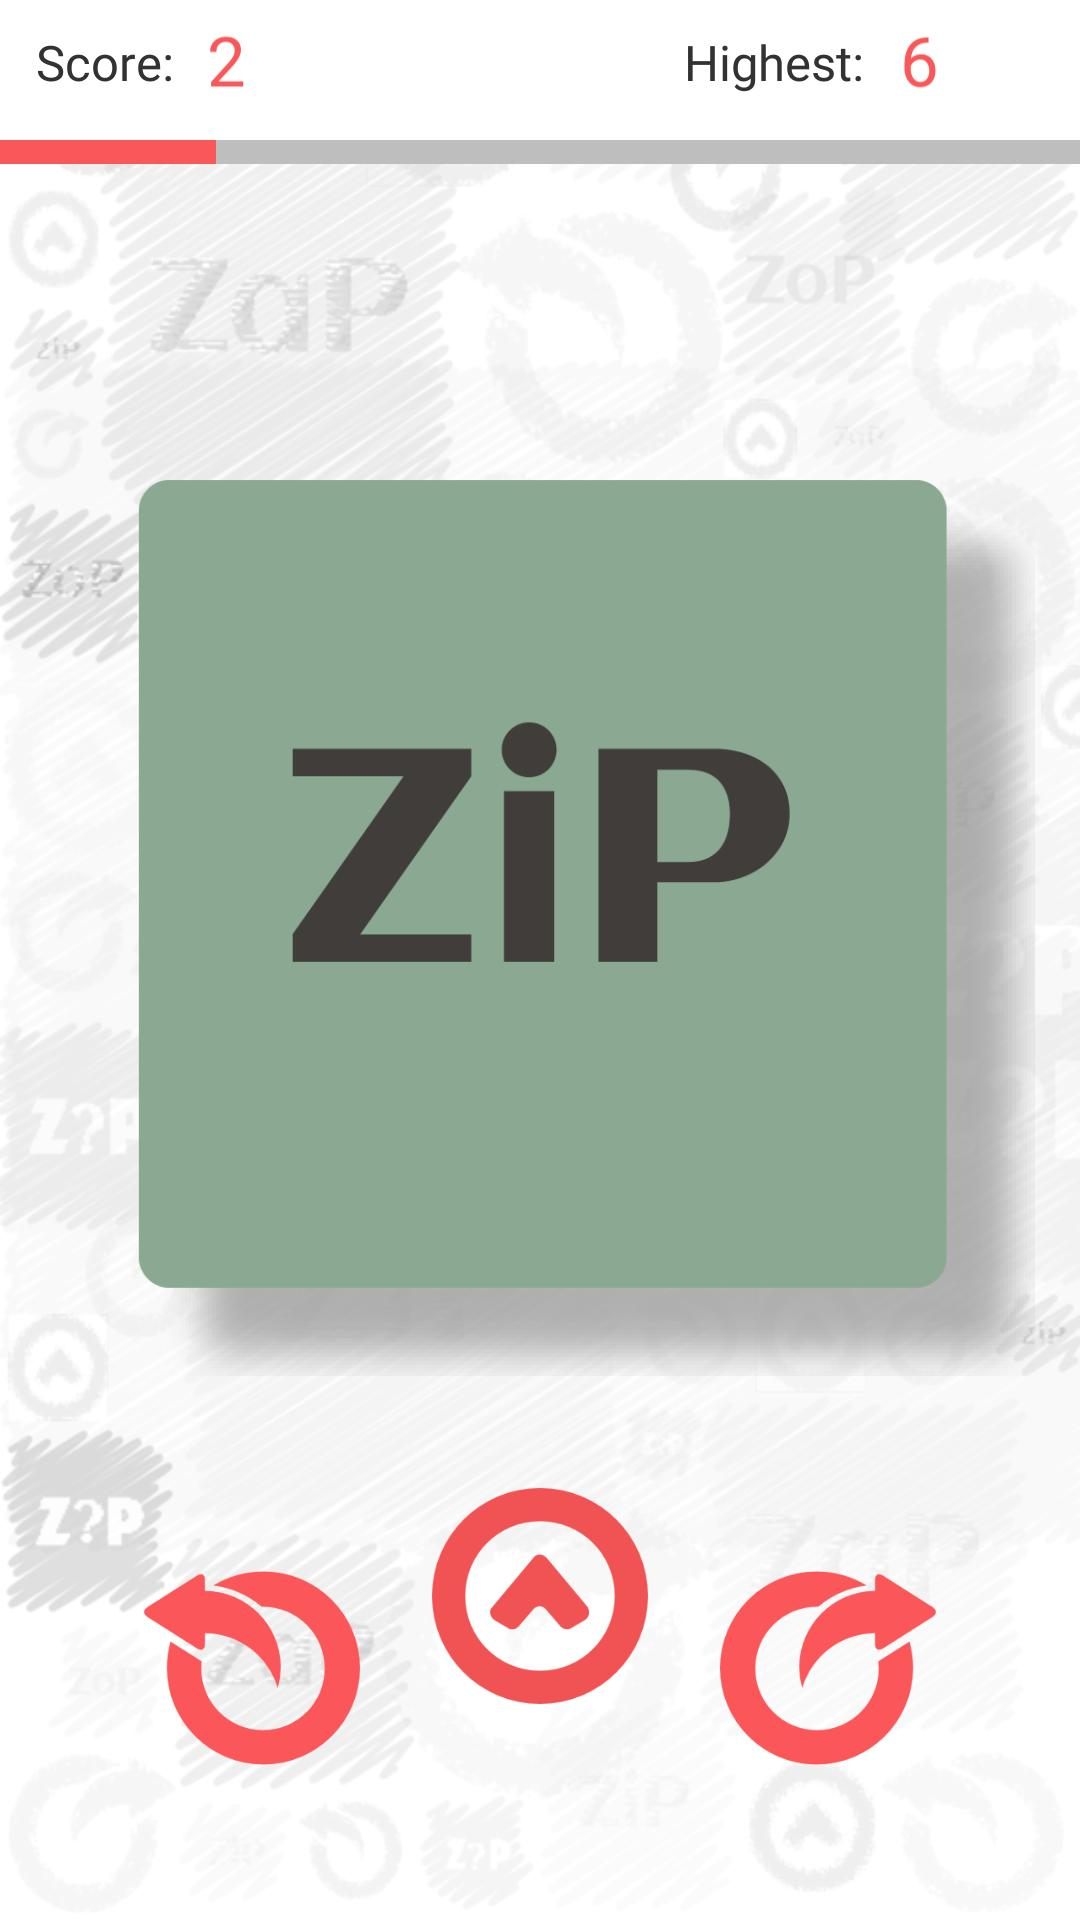 Zip Zap Zop - Brain Exercise for Android - APK Download